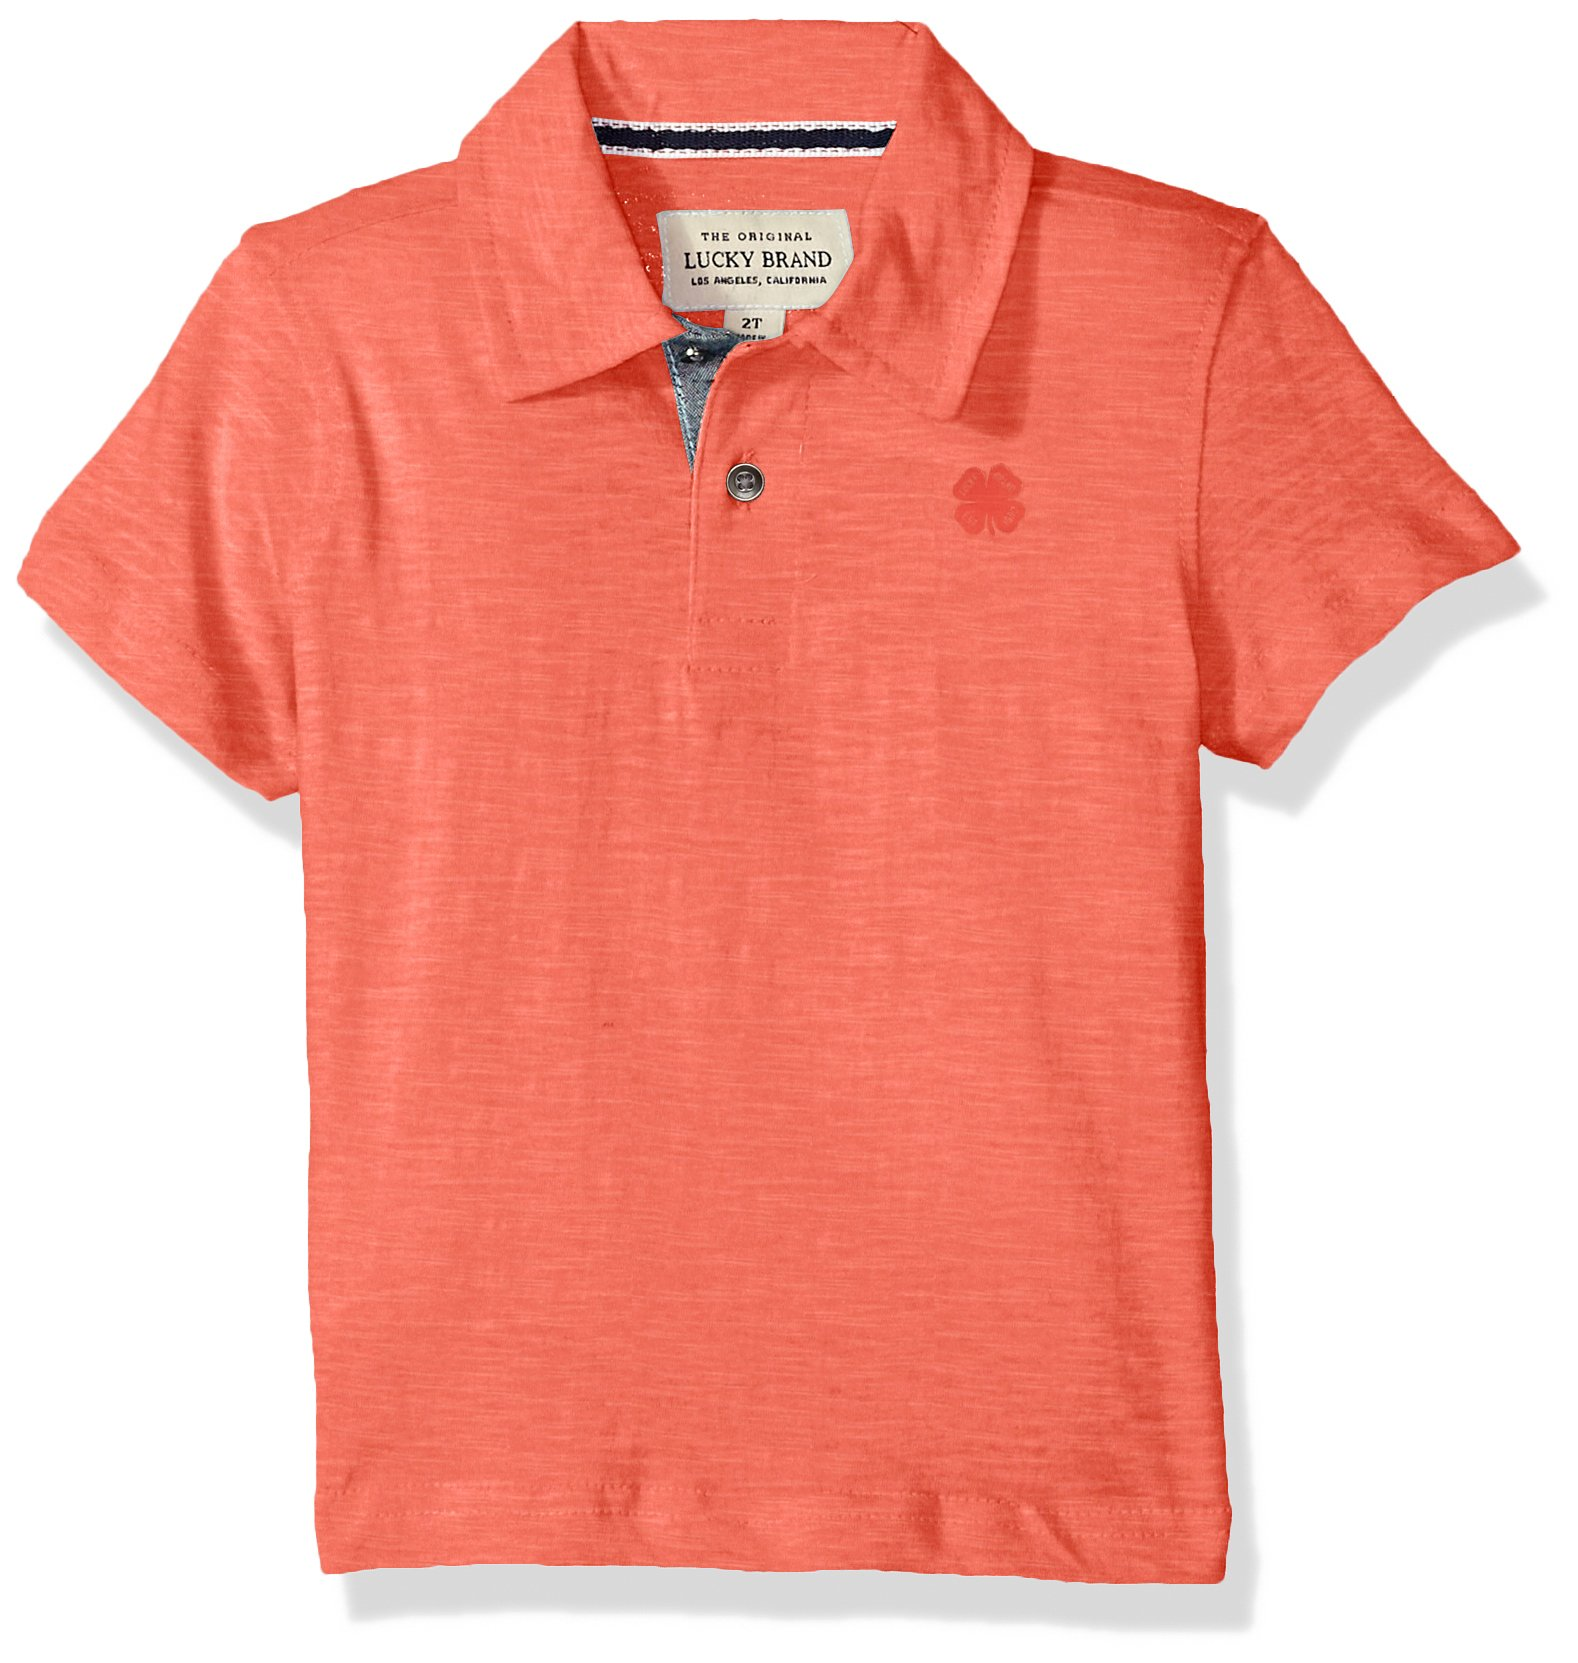 Lucky Brand Little Boys' Short Sleeve Polo, Washed Spiced Coral, 7